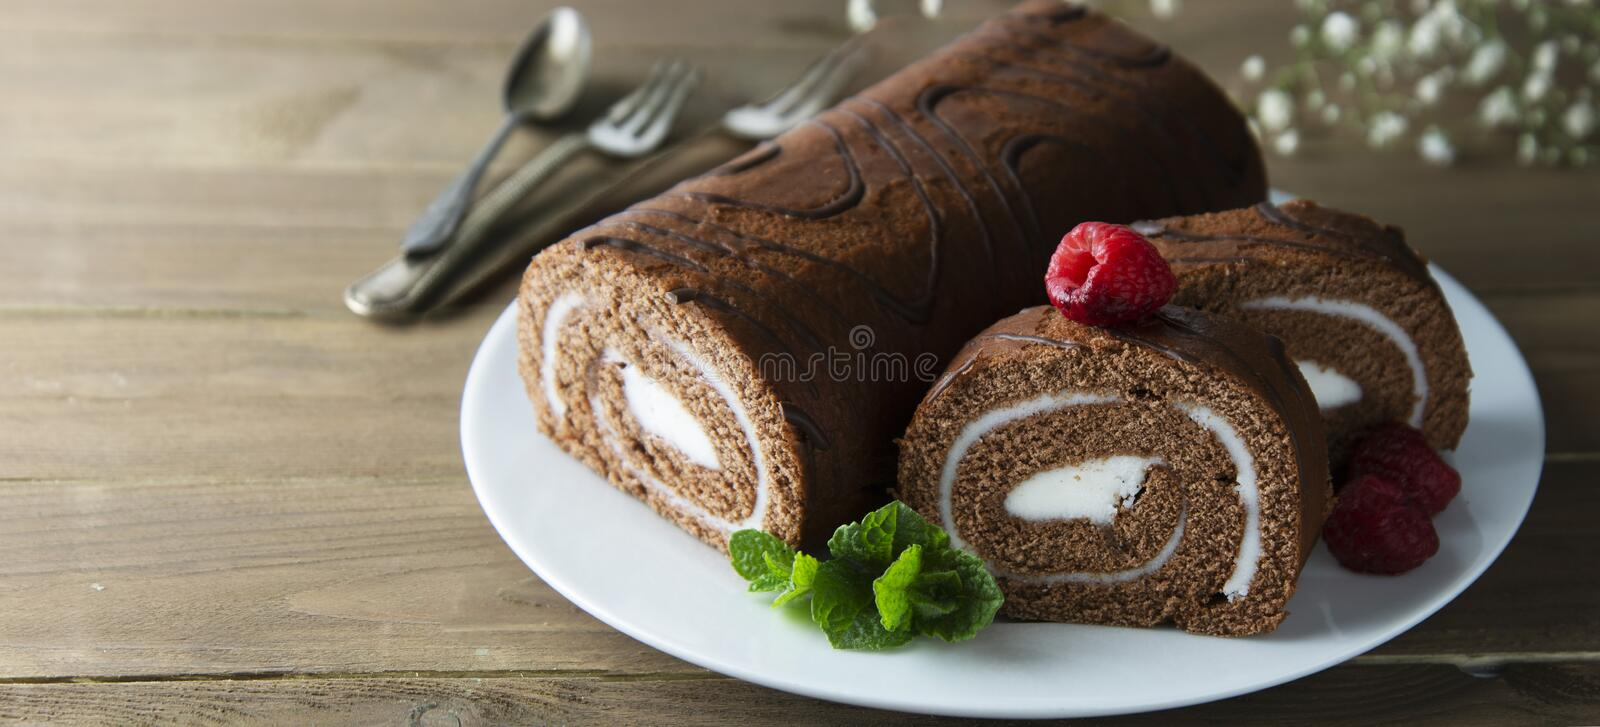 Delicious chocolate roll sponge cake with vanilla cream and mint leaves. Desert sweet food. Banner stock images